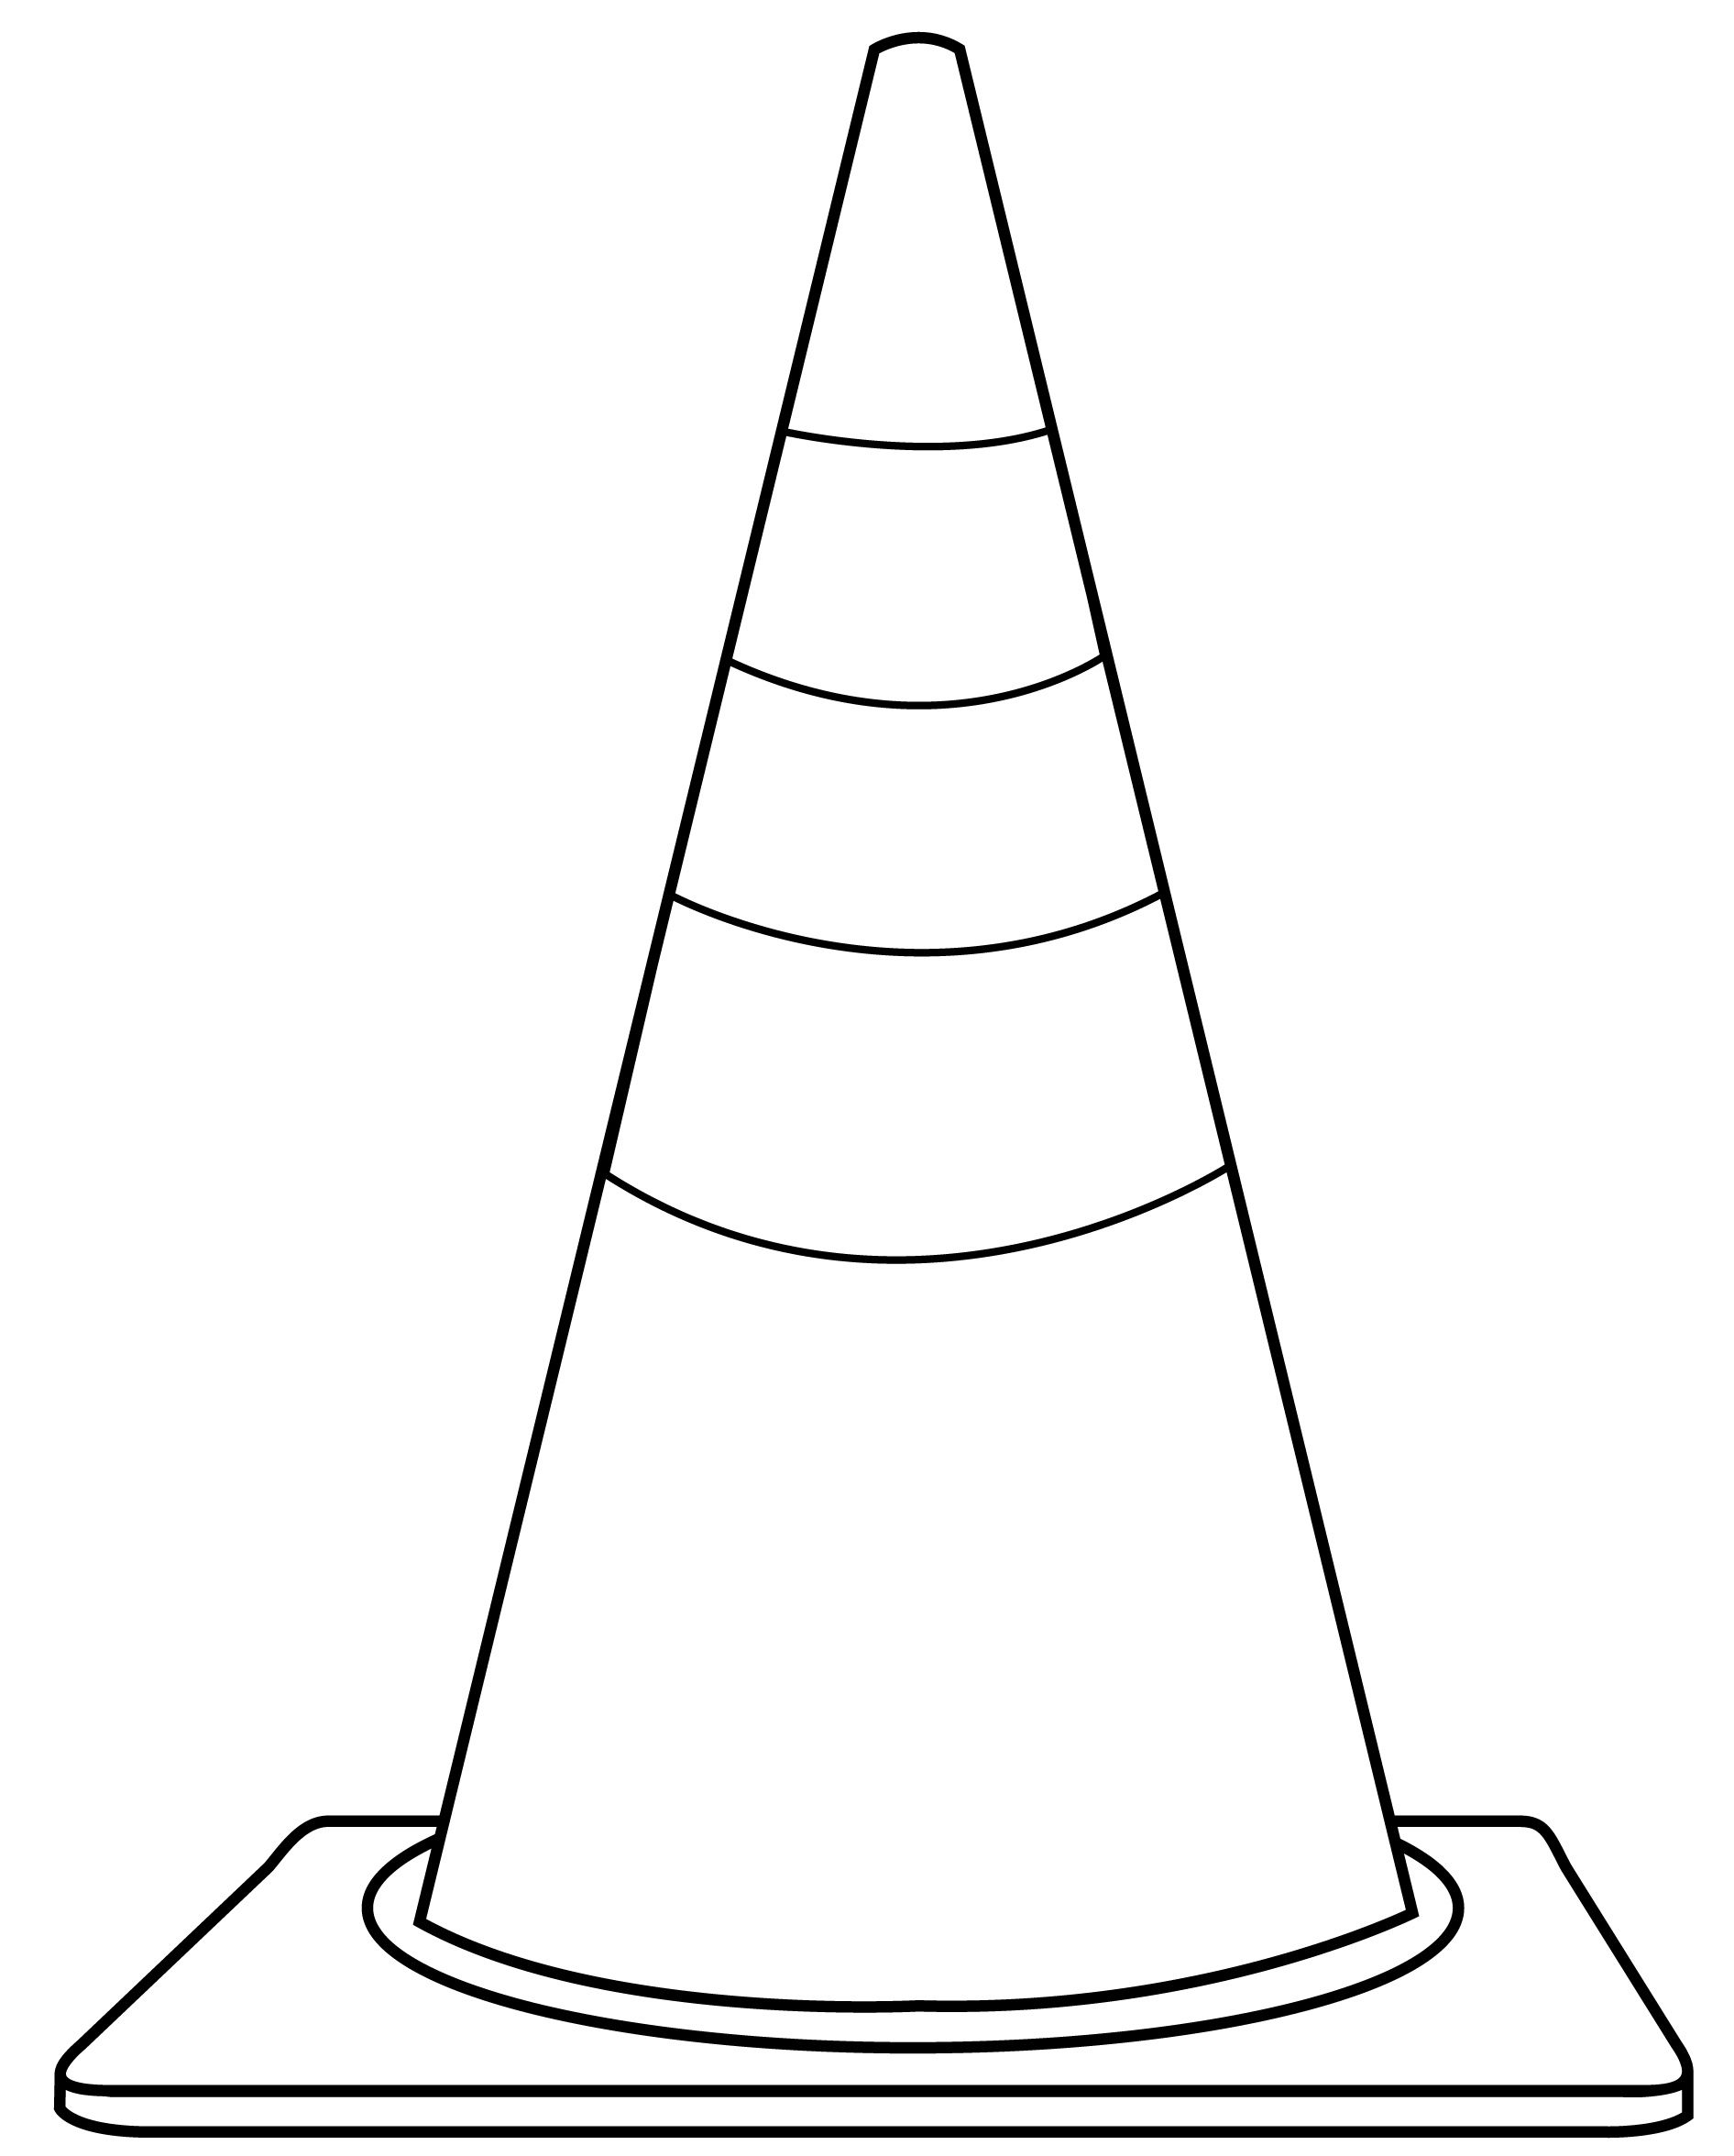 Flat trianle cone black and white clipart svg royalty free download Free Cone Shape Cliparts, Download Free Clip Art, Free Clip Art on ... svg royalty free download